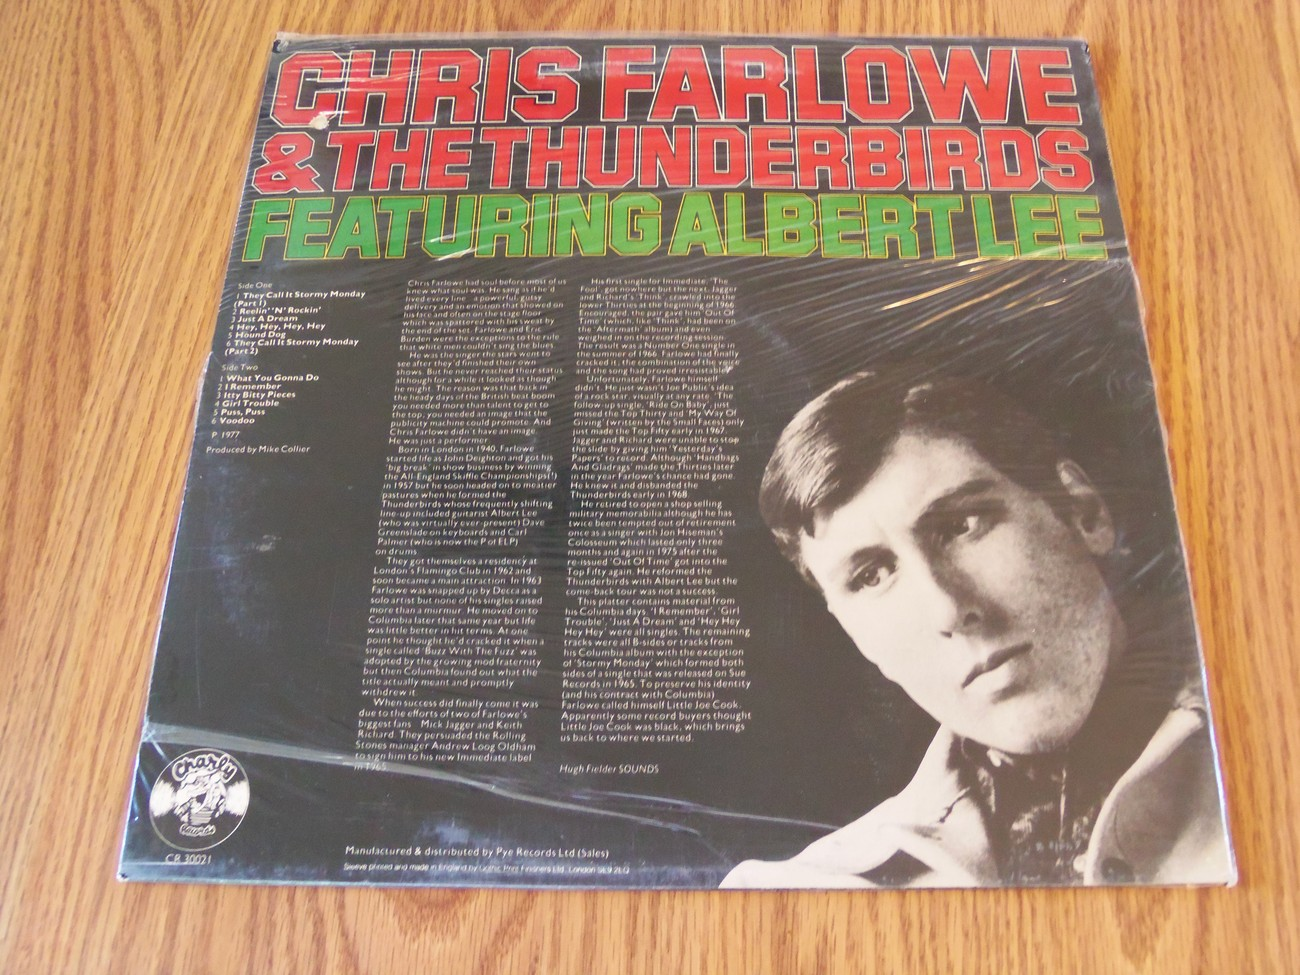 Chris Farlowe & The Thunderbirds Featuring Albert Lee SS 1977 Charly Records